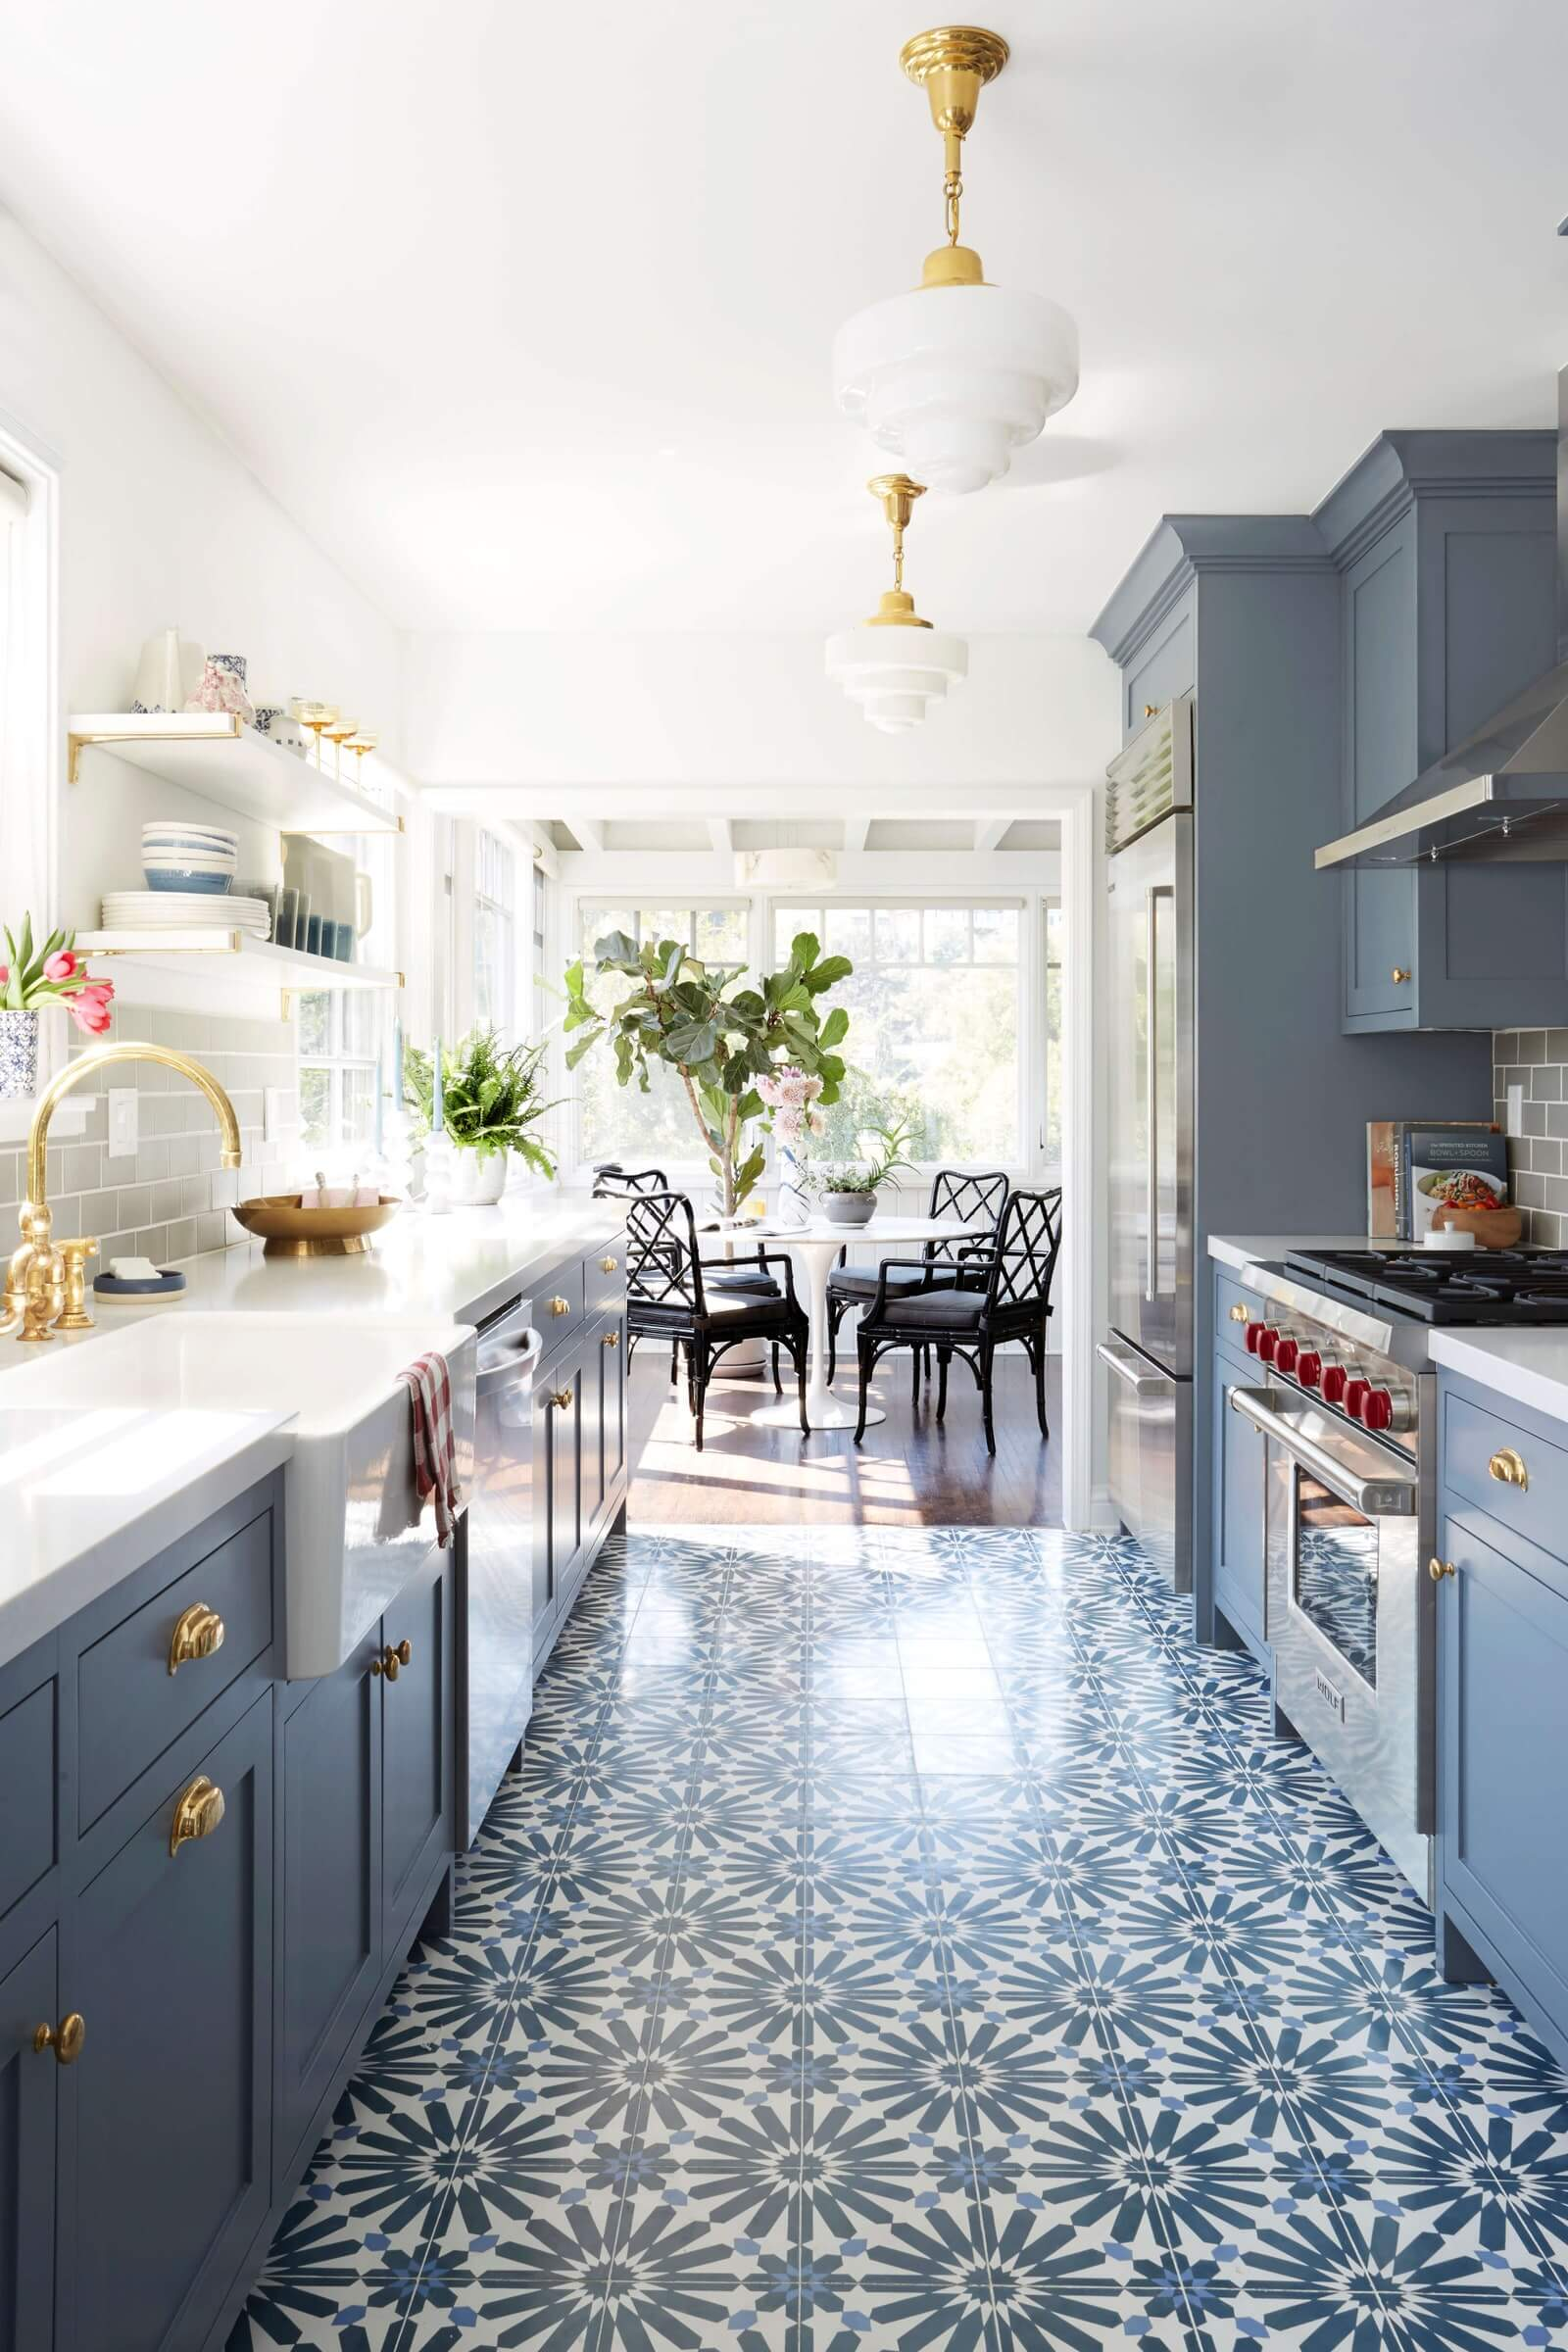 BOLD AND CLASSIC GALLEY KITCHEN DESIGN IDEAS